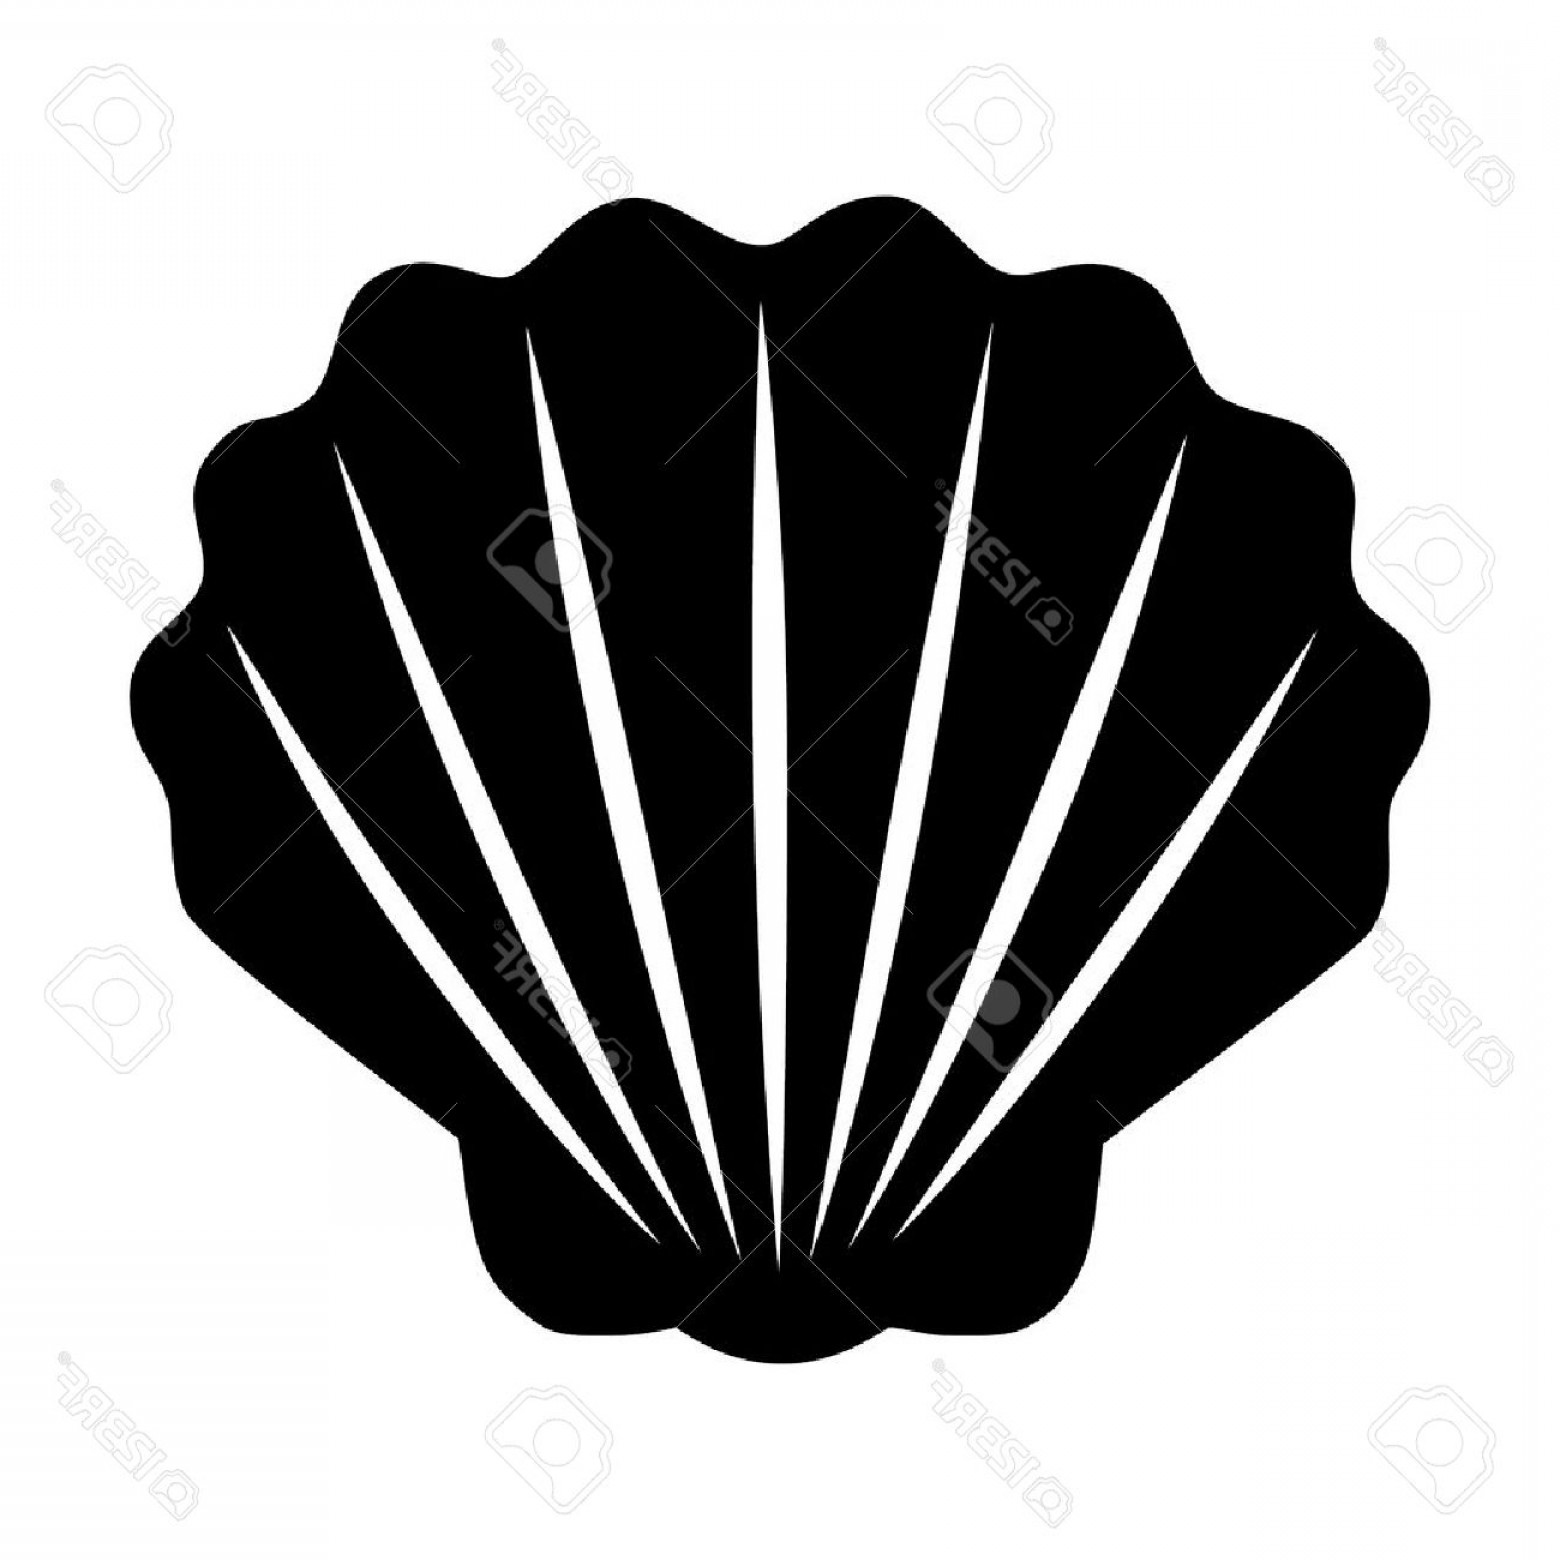 Shell Vector Icons: Photostock Vector Seashell Shellfish Flat Icon For Apps And Websites